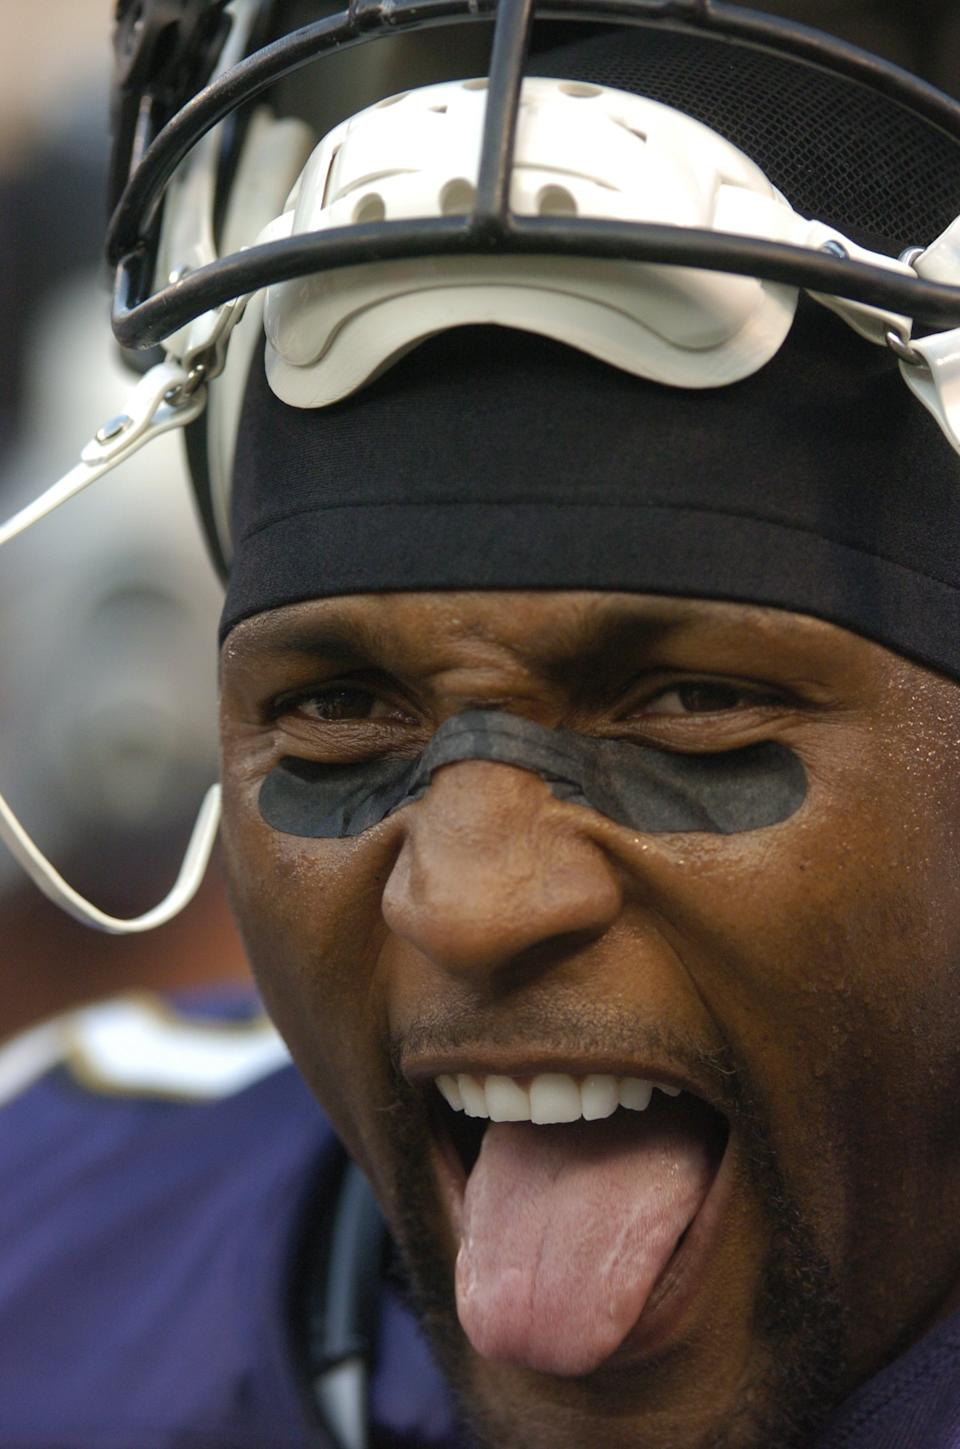 BALTIMORE - AUGUST 13: Ray Lewis #52 of the Baltimore Ravens waits to get into the game against the Philadelphia Eagles on August 13, 2007 at M&T Bank Stadium in Baltimore, Maryland. (Photo by G Fiume/Getty Images)